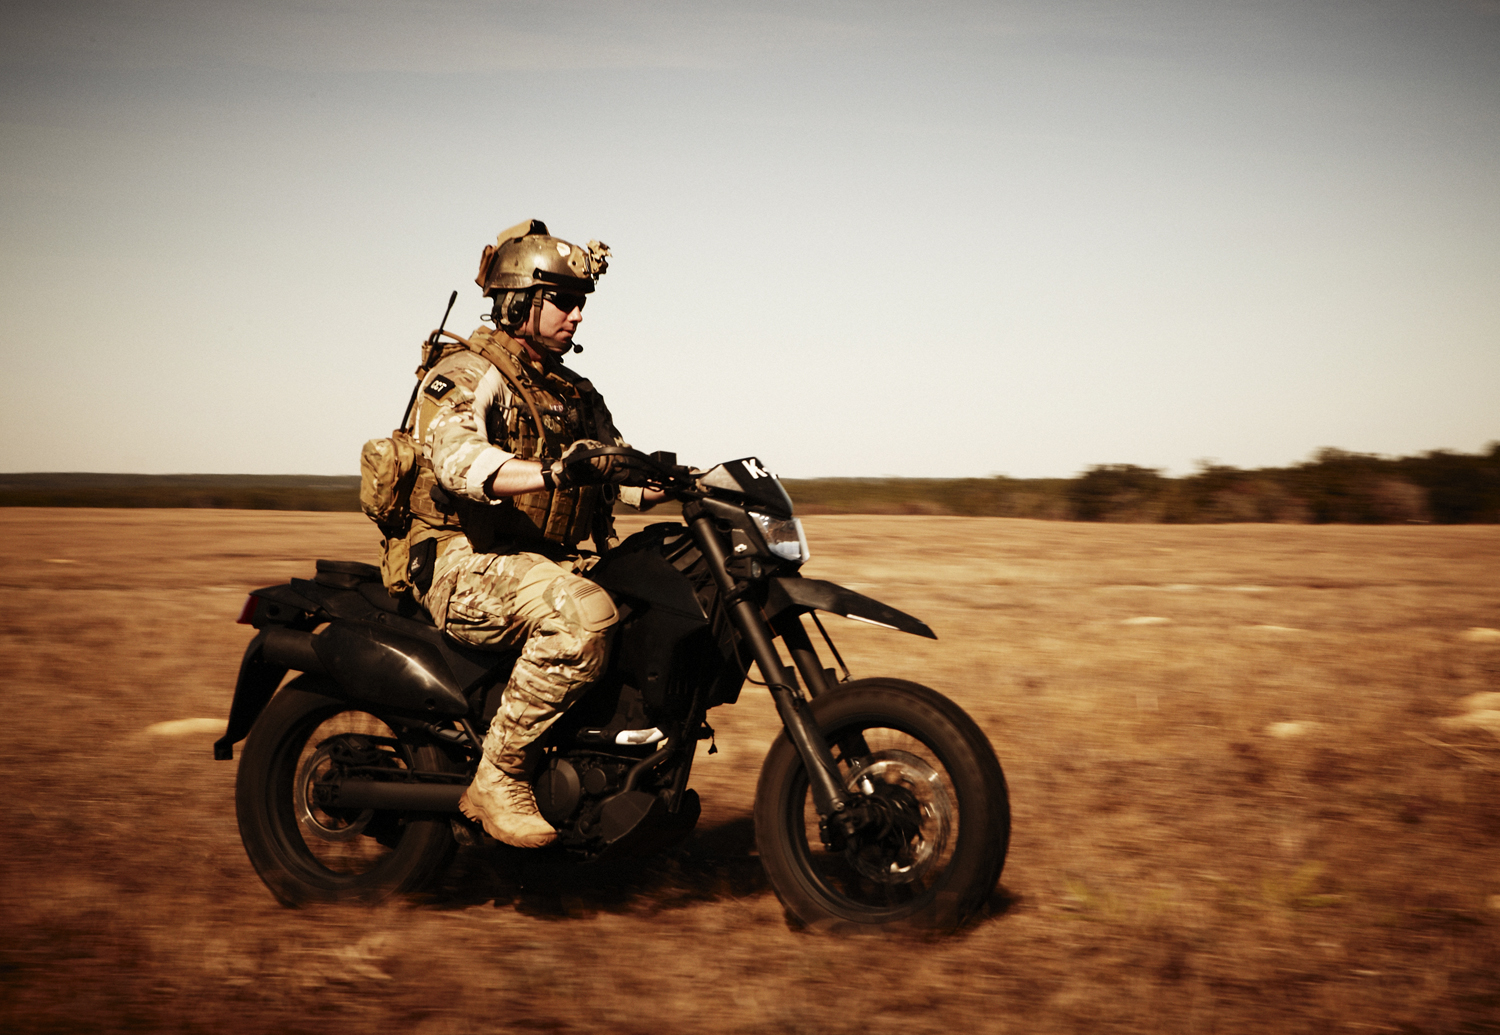 Air Force Special Ops (AFSOC) - MacDill Air Force Base, FL